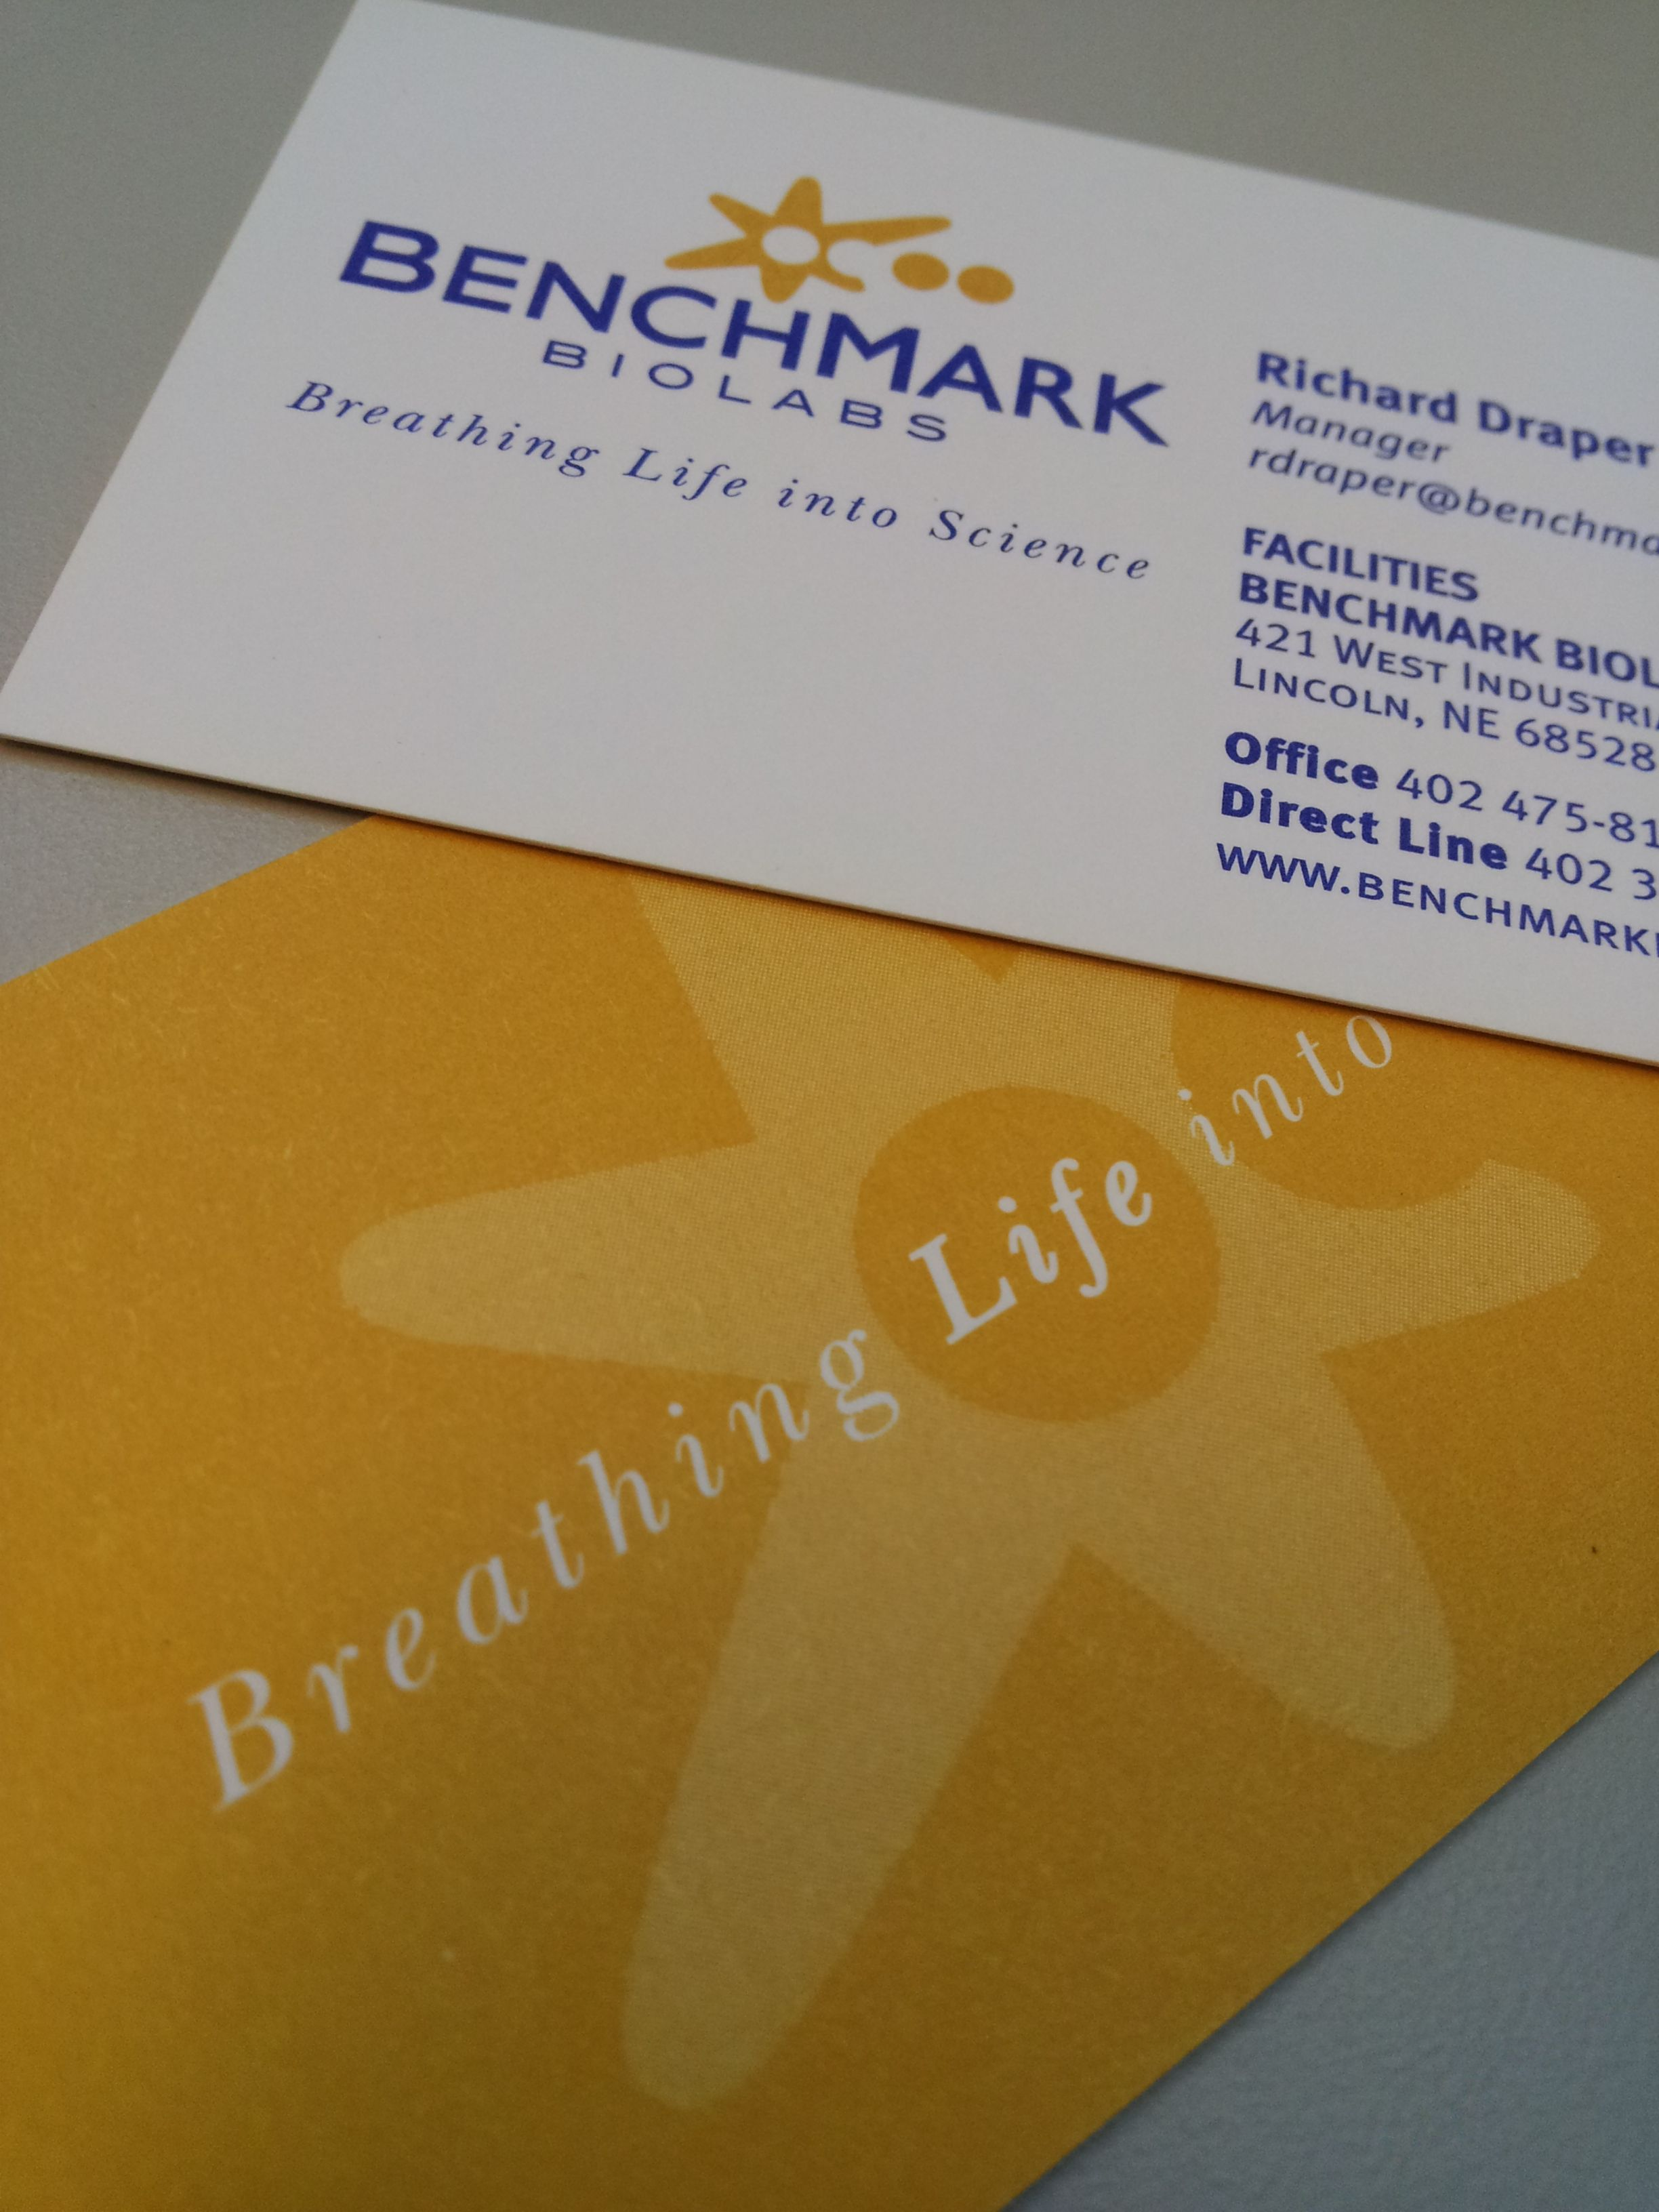 Benchmark biolabs business cards pinterest explore business cards and more benchmark biolabs business cards colourmoves